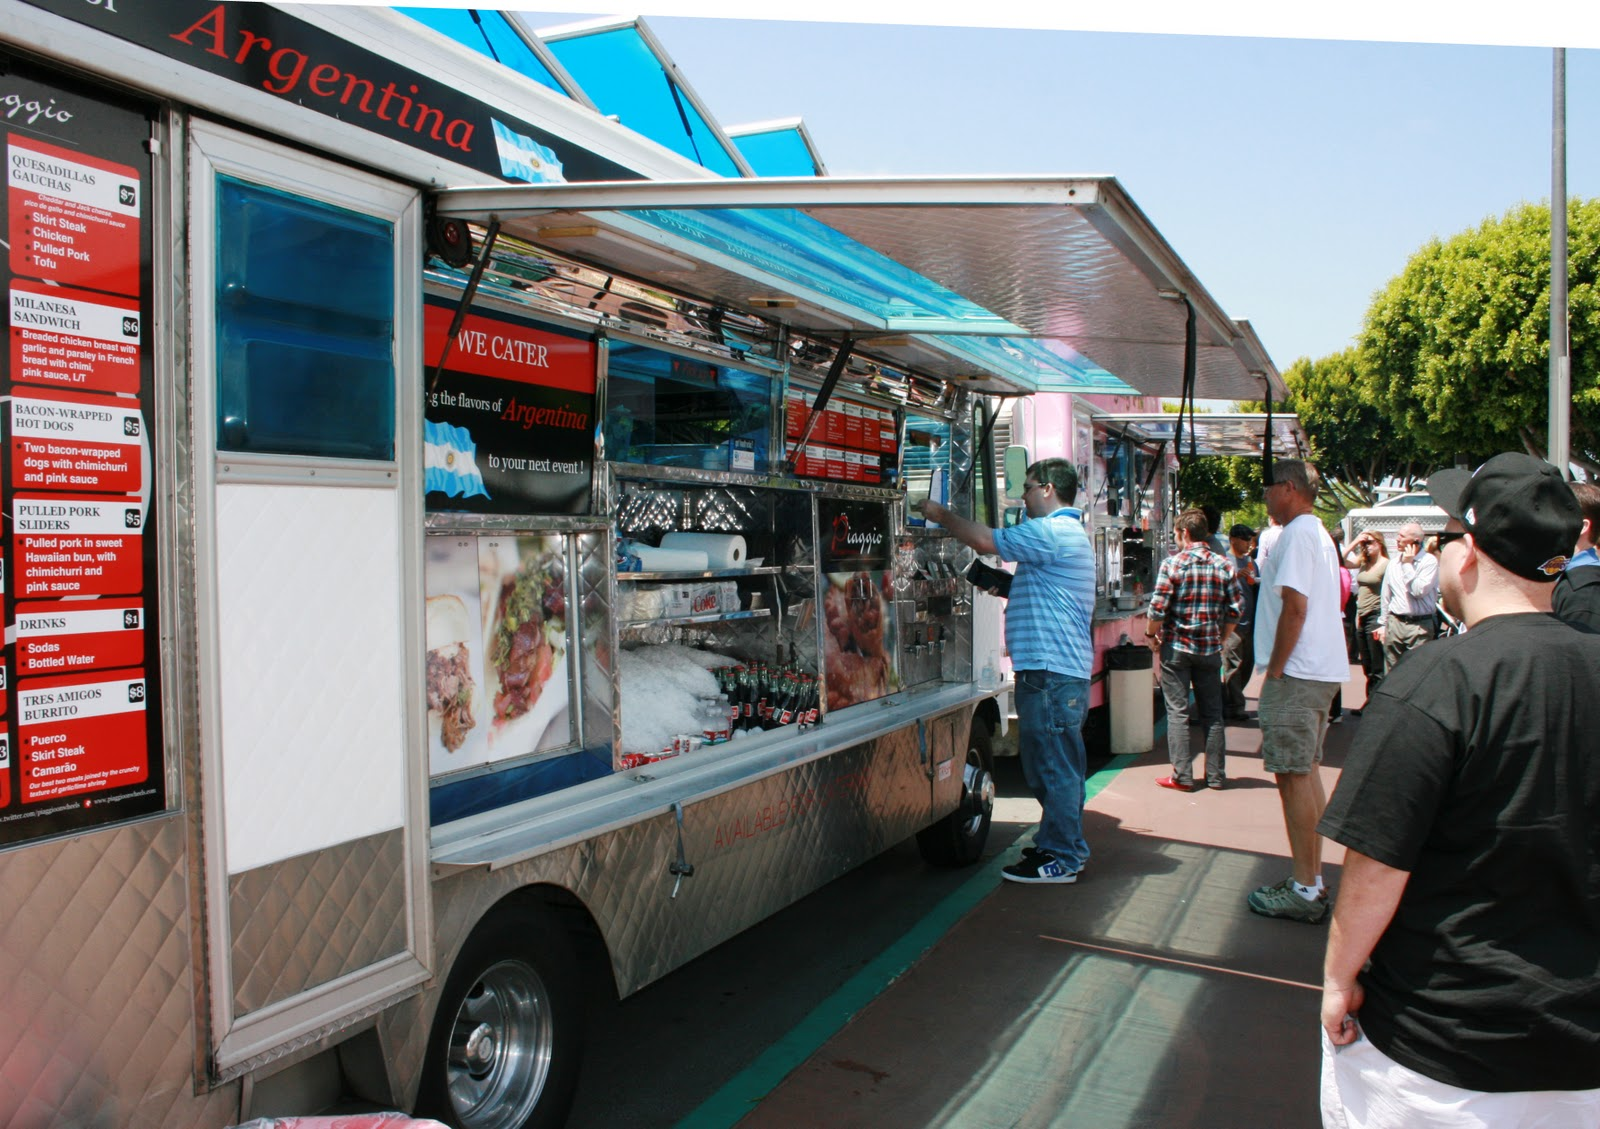 I went to find my friends  Linda and Nancy at a table nearby  They had  ordered the  Santa Fe Baker  an open faced baked potato from  Spud  Runners ciao  newport beach  orange county food trucks. Costa Mesa Fairgrounds Food Trucks. Home Design Ideas